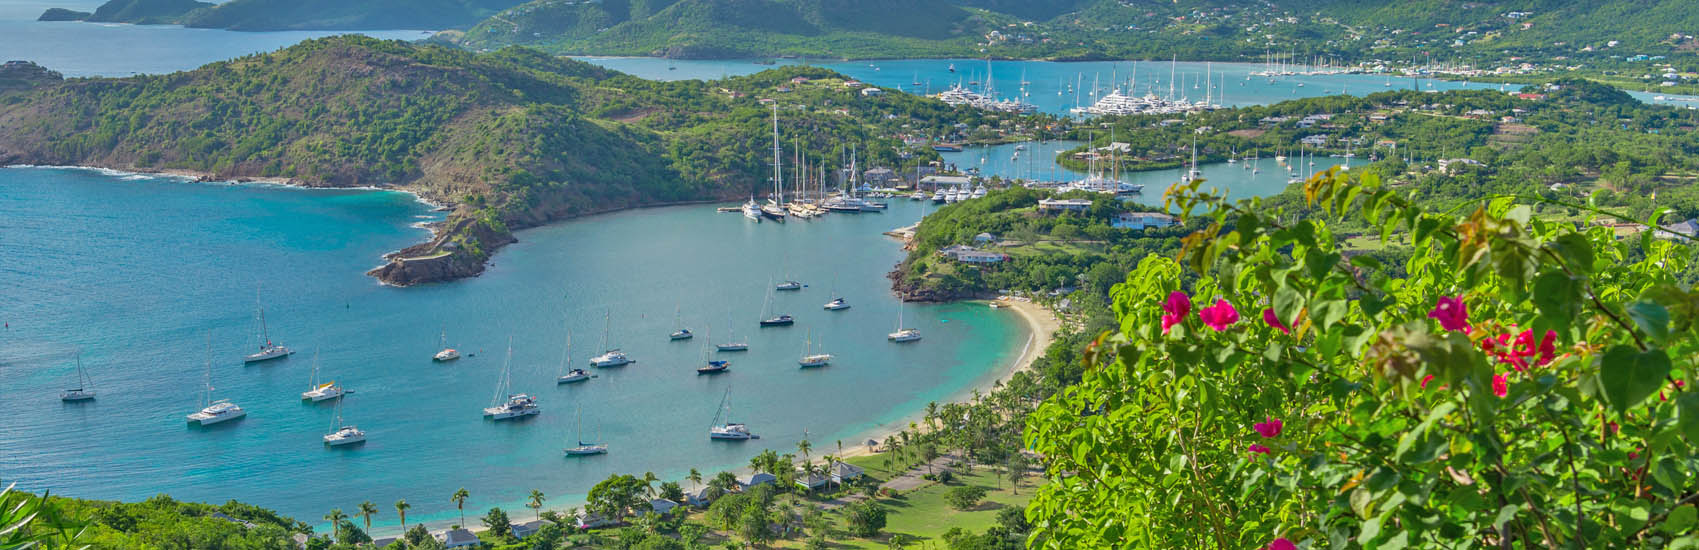 Get More Caribbean with Silversea Cruises 2